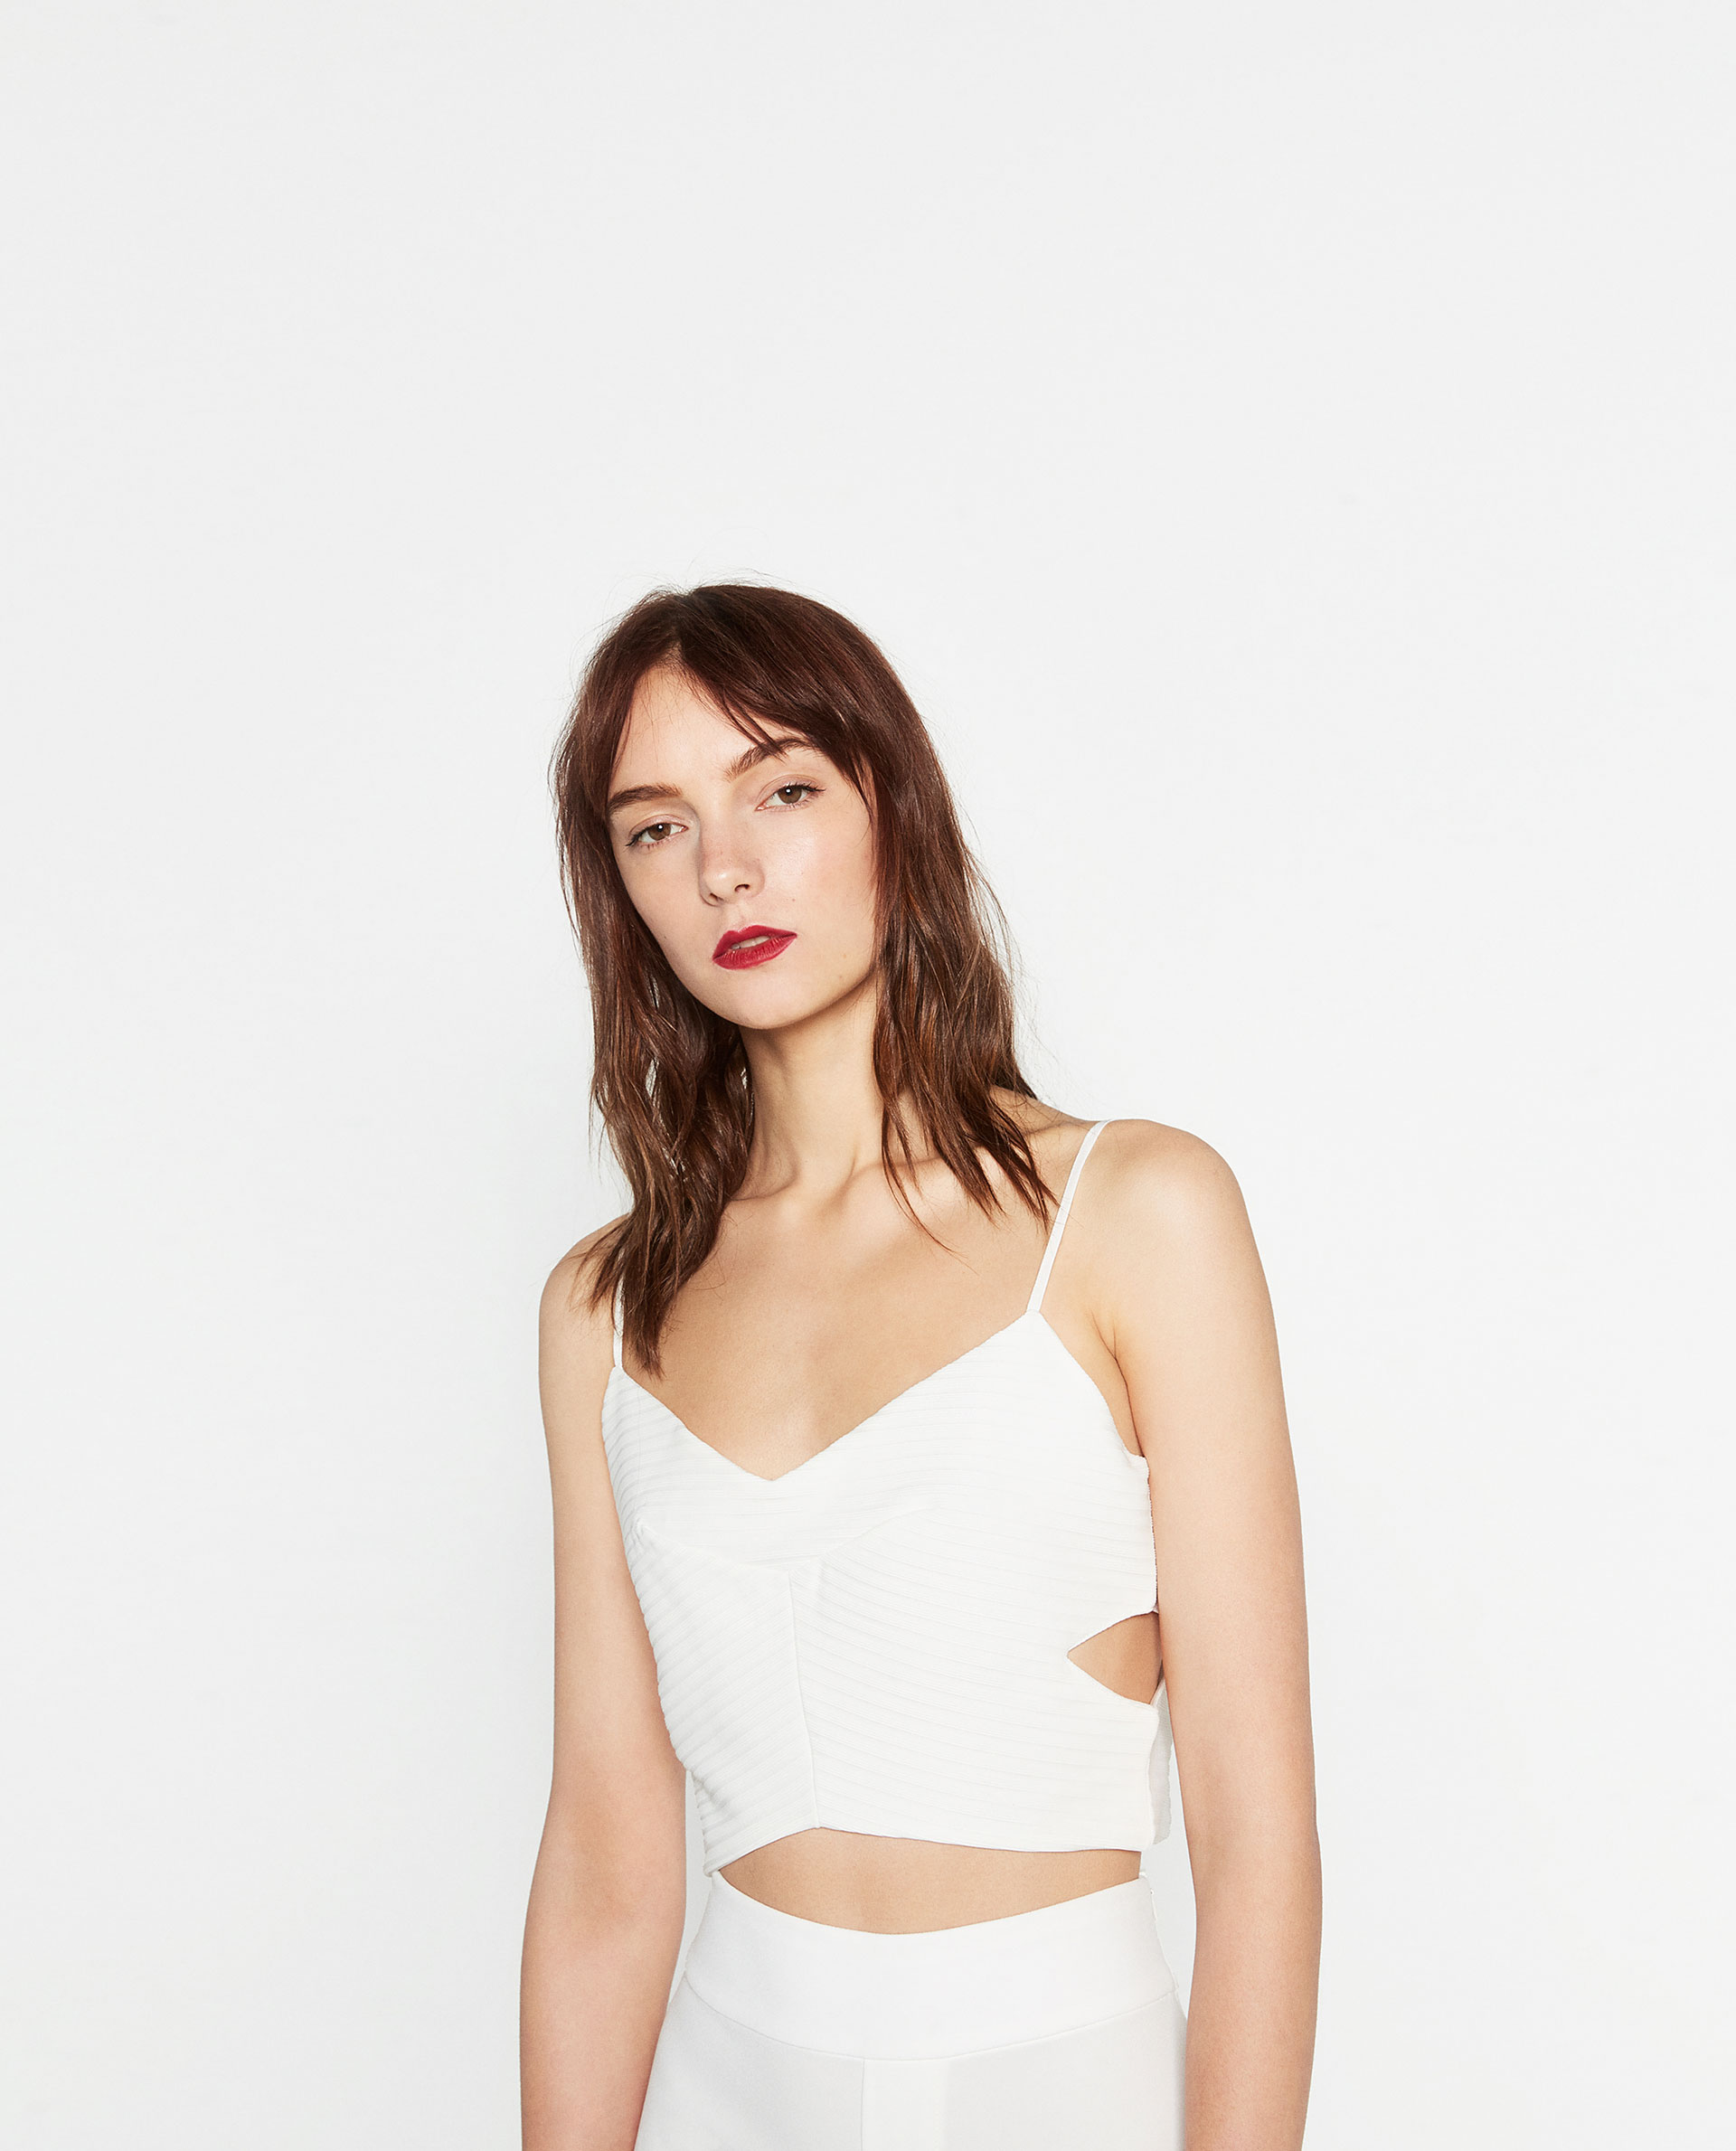 A model in a white crop top with side cutouts